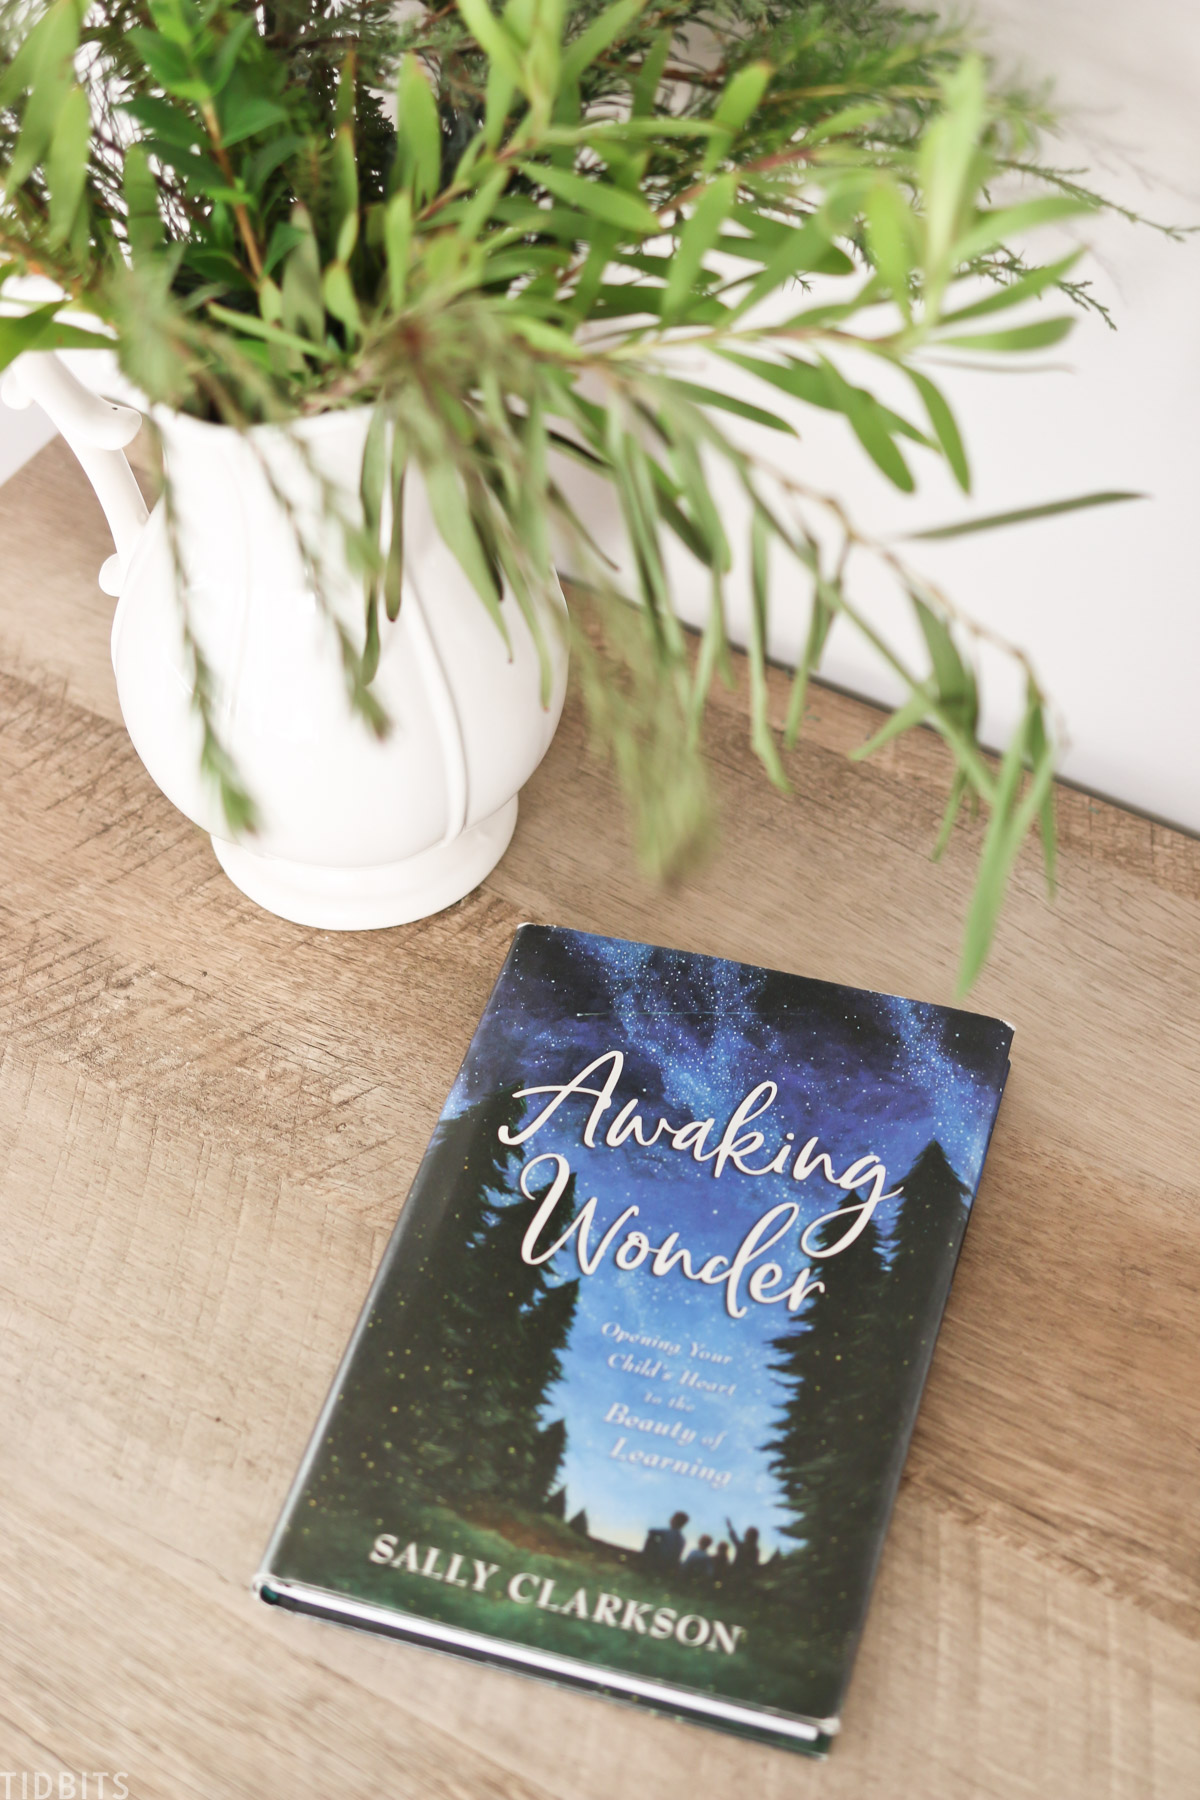 the book Awaking Wonder by Sally Clarkson on a side table next to a plant in a vase